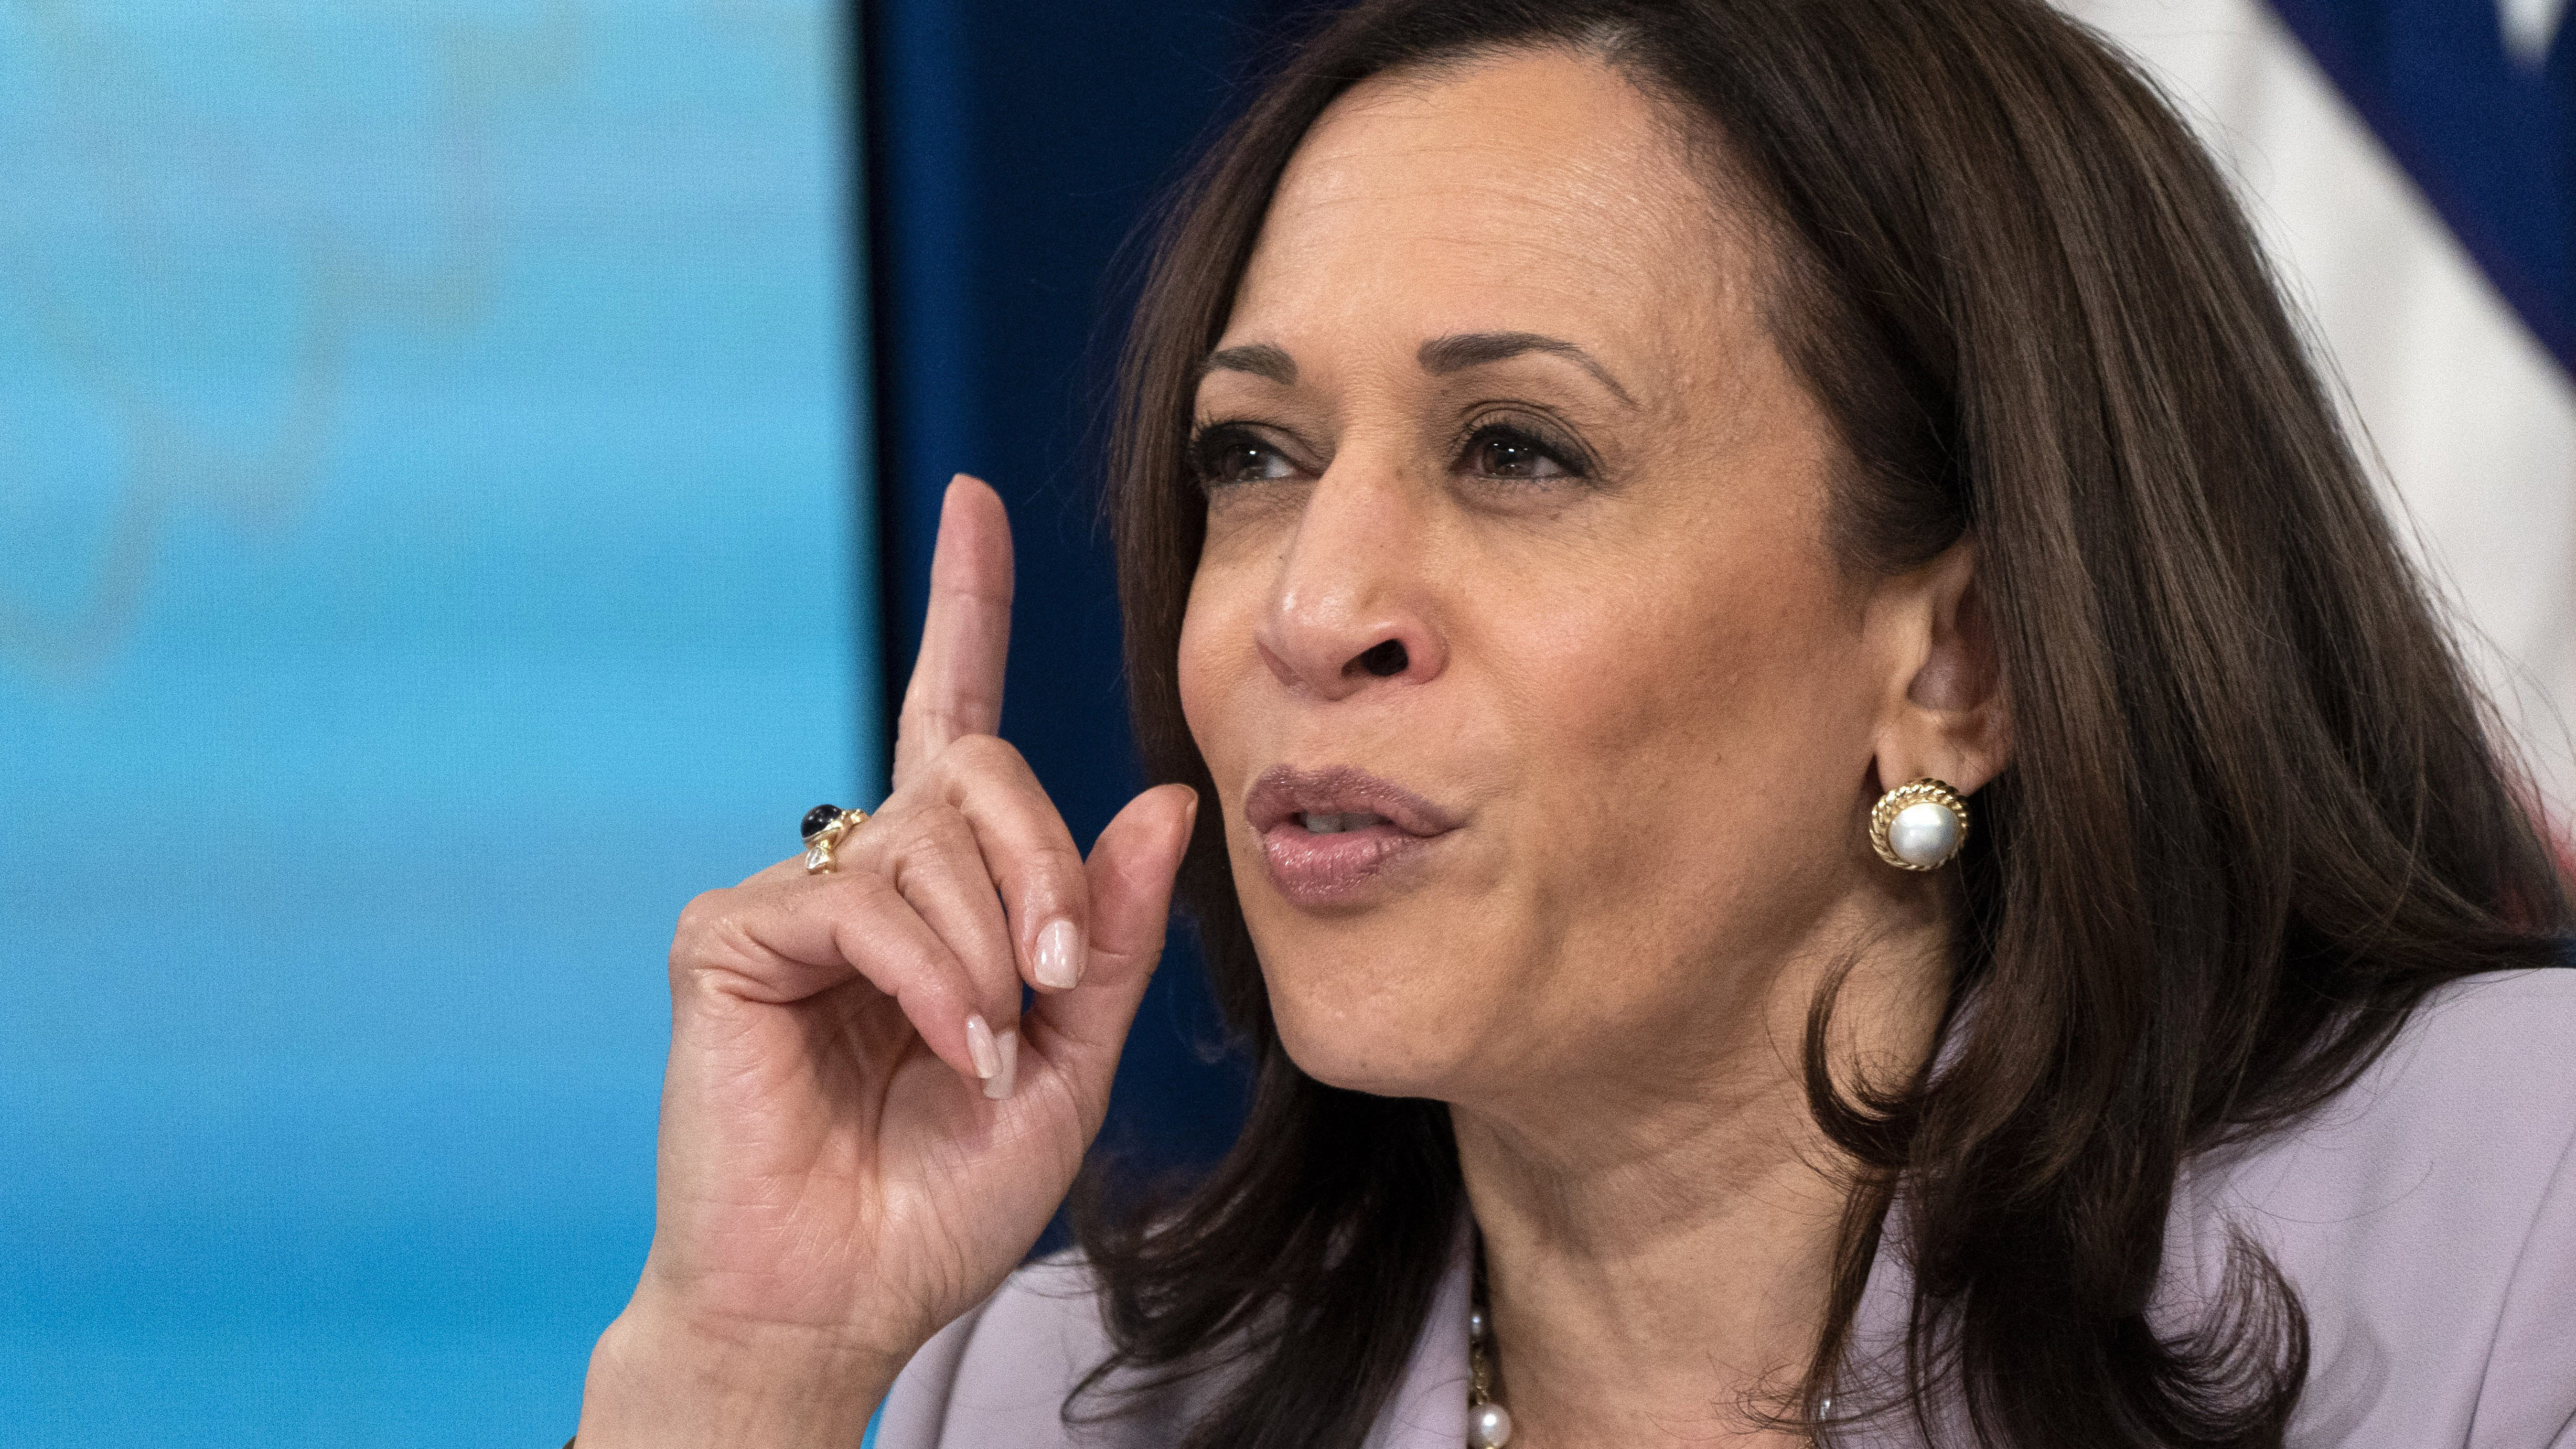 Vice President Harris Hints That She Has Discussed Filibuster Changes With Senators